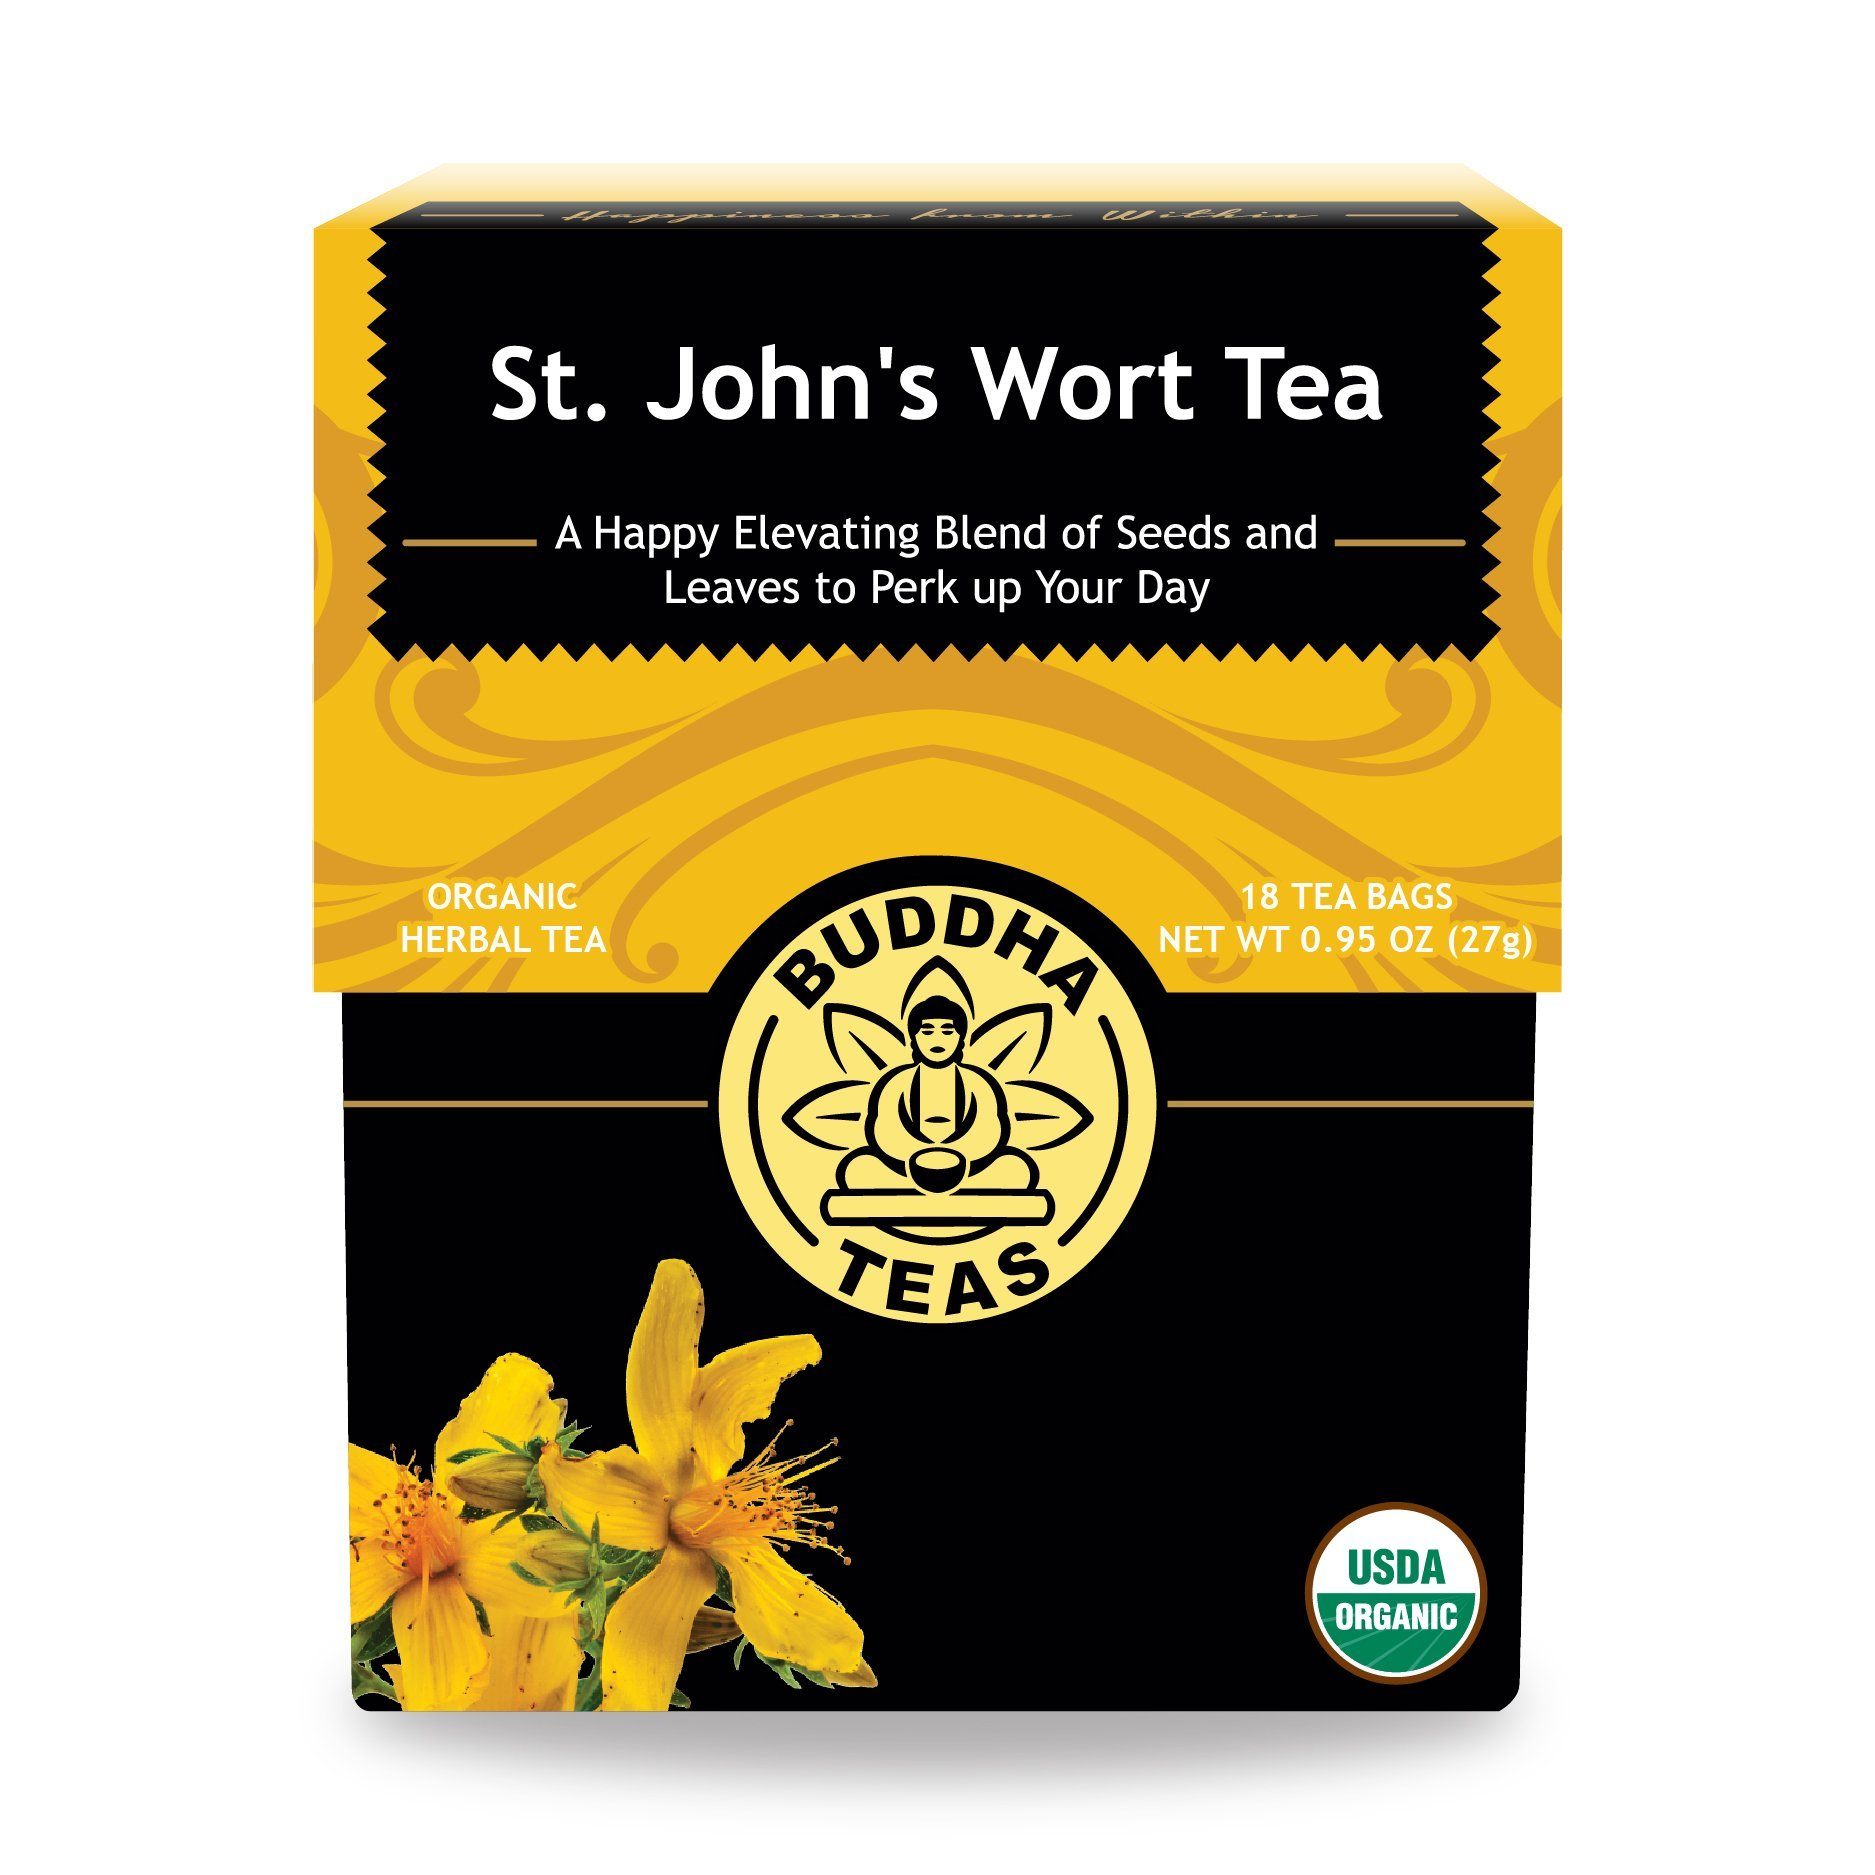 Organic St. John's Wort Tea, 18 Bleach-Free Tea Bags –Caffeine Free Tea Makes a Great Pre-Bedtime Relaxant, Decreases Cyclical Hormone Issues, and is Rich in Antioxidants and Vitamin C, No GMOs